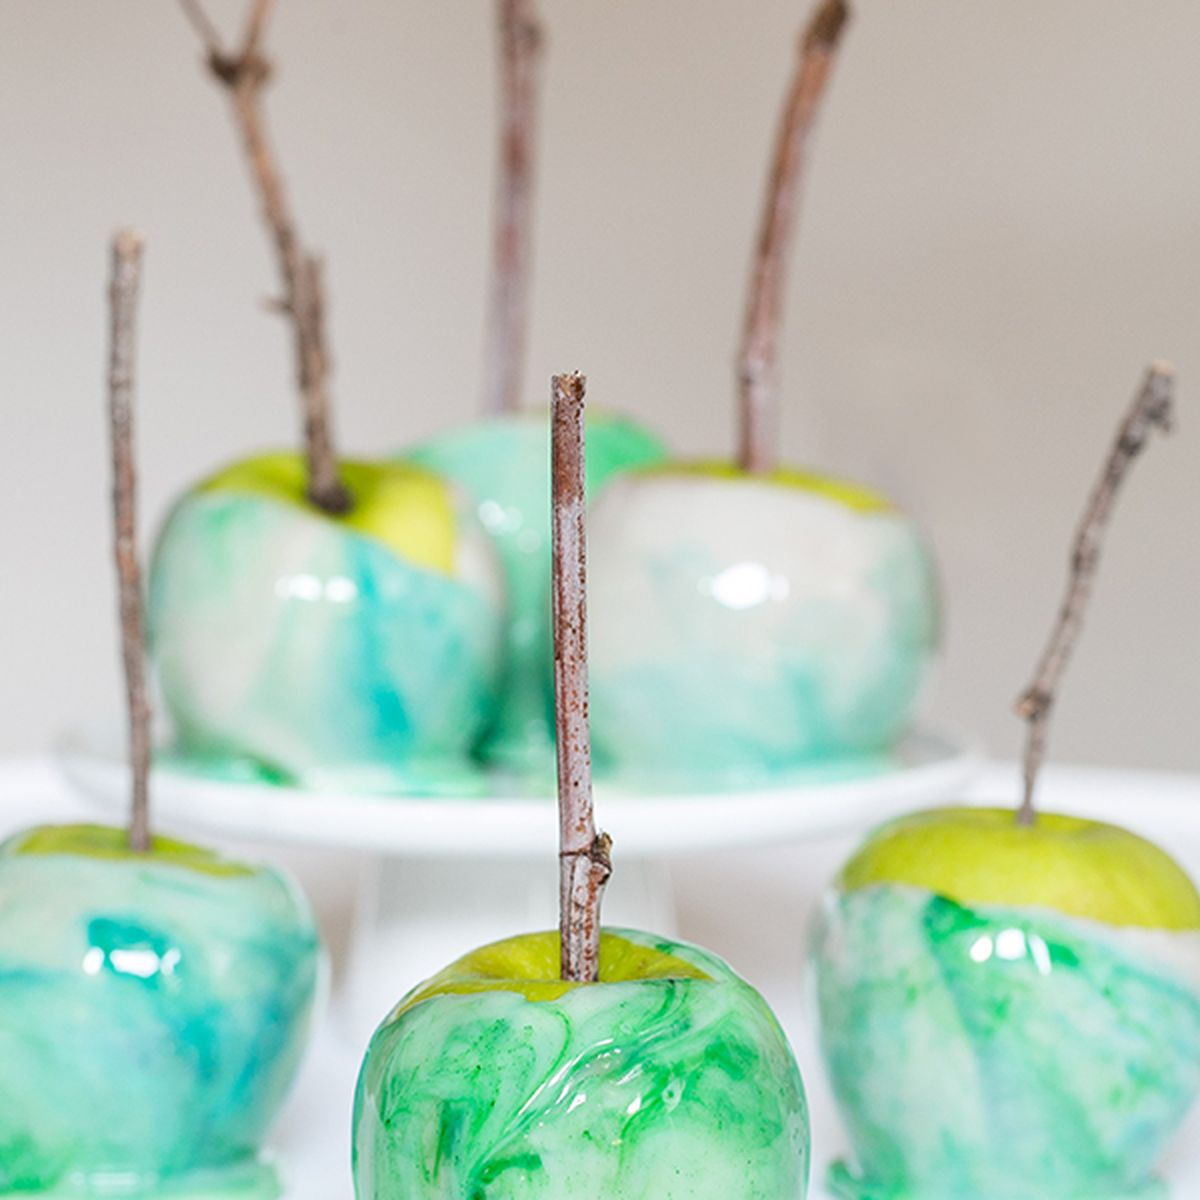 Marbled Candy Apples Recipe on Food52